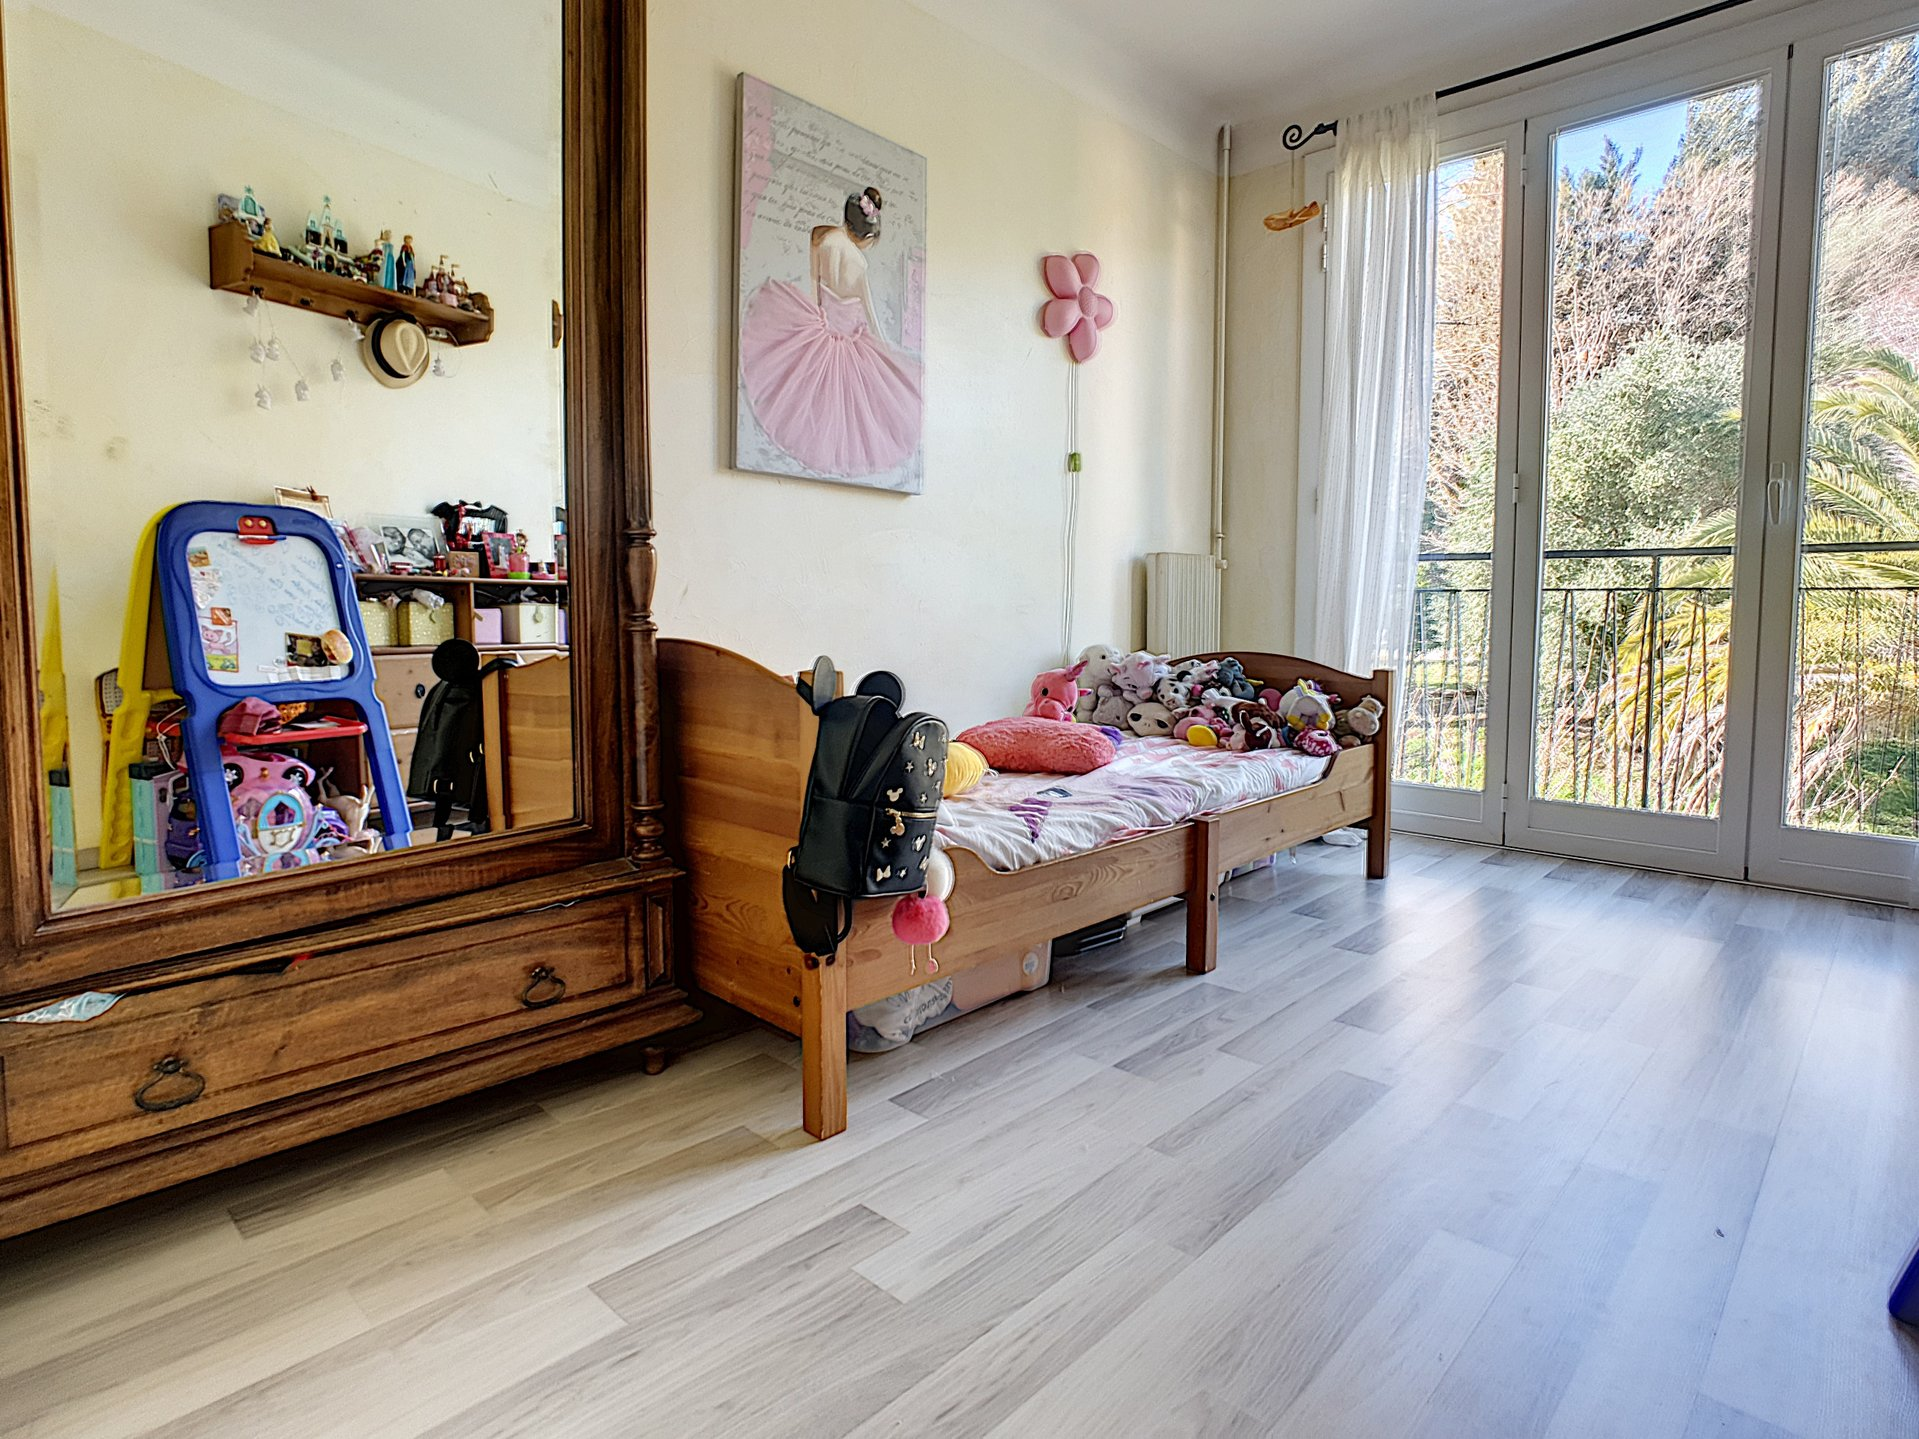 Vente appartement 3P à Grasse Saint Jacques